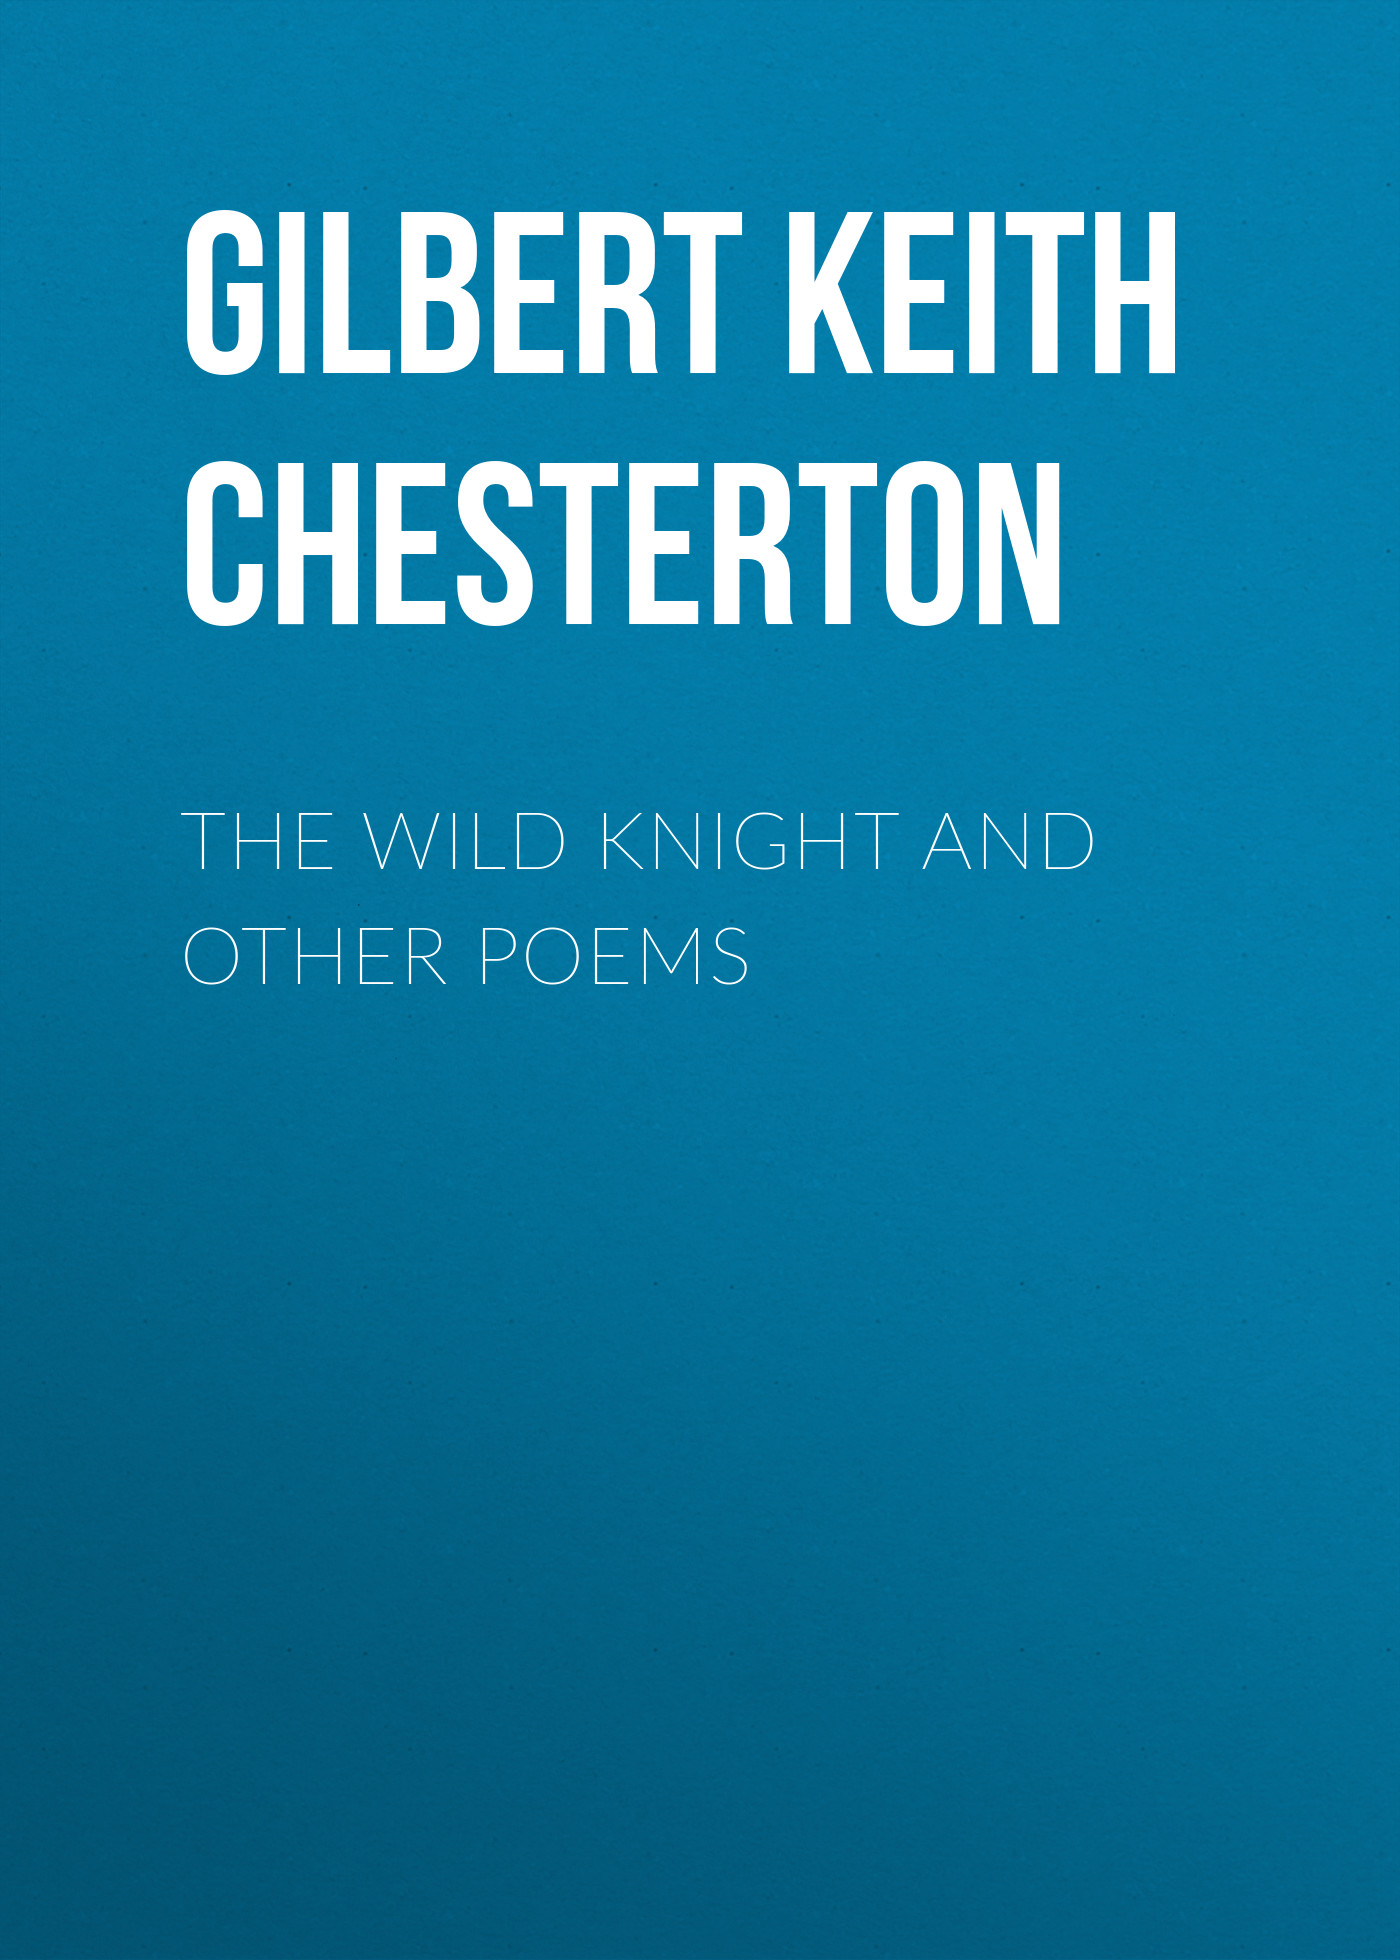 Gilbert Keith Chesterton The Wild Knight and Other Poems gilbert keith chesterton the ball and the cross